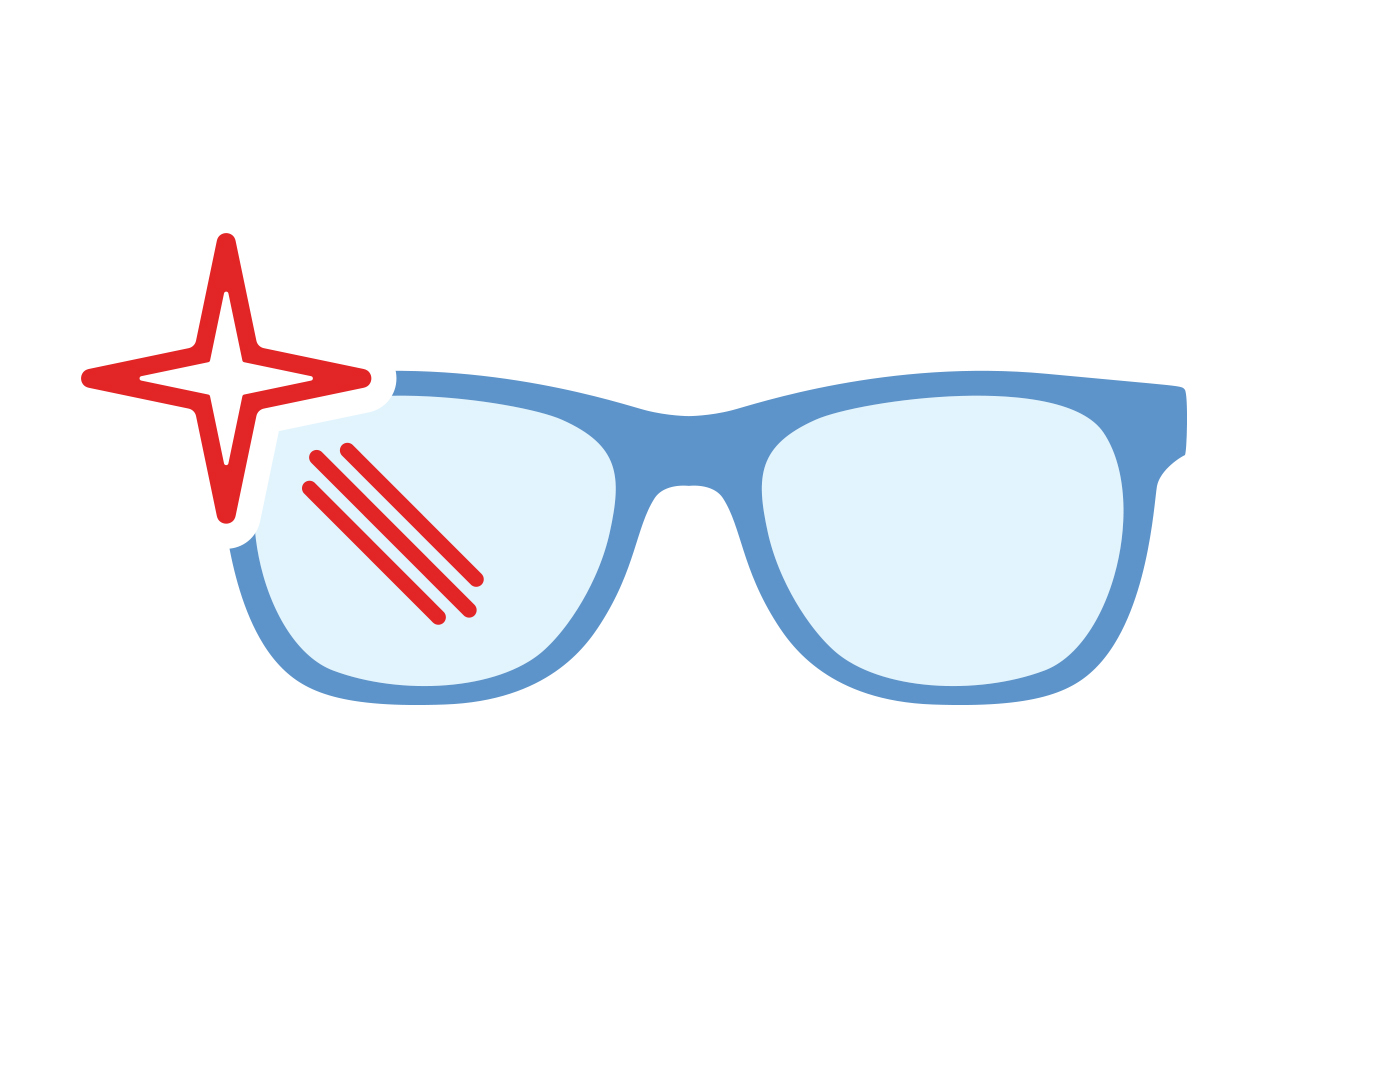 Icon of glasses with anti-glare lenses